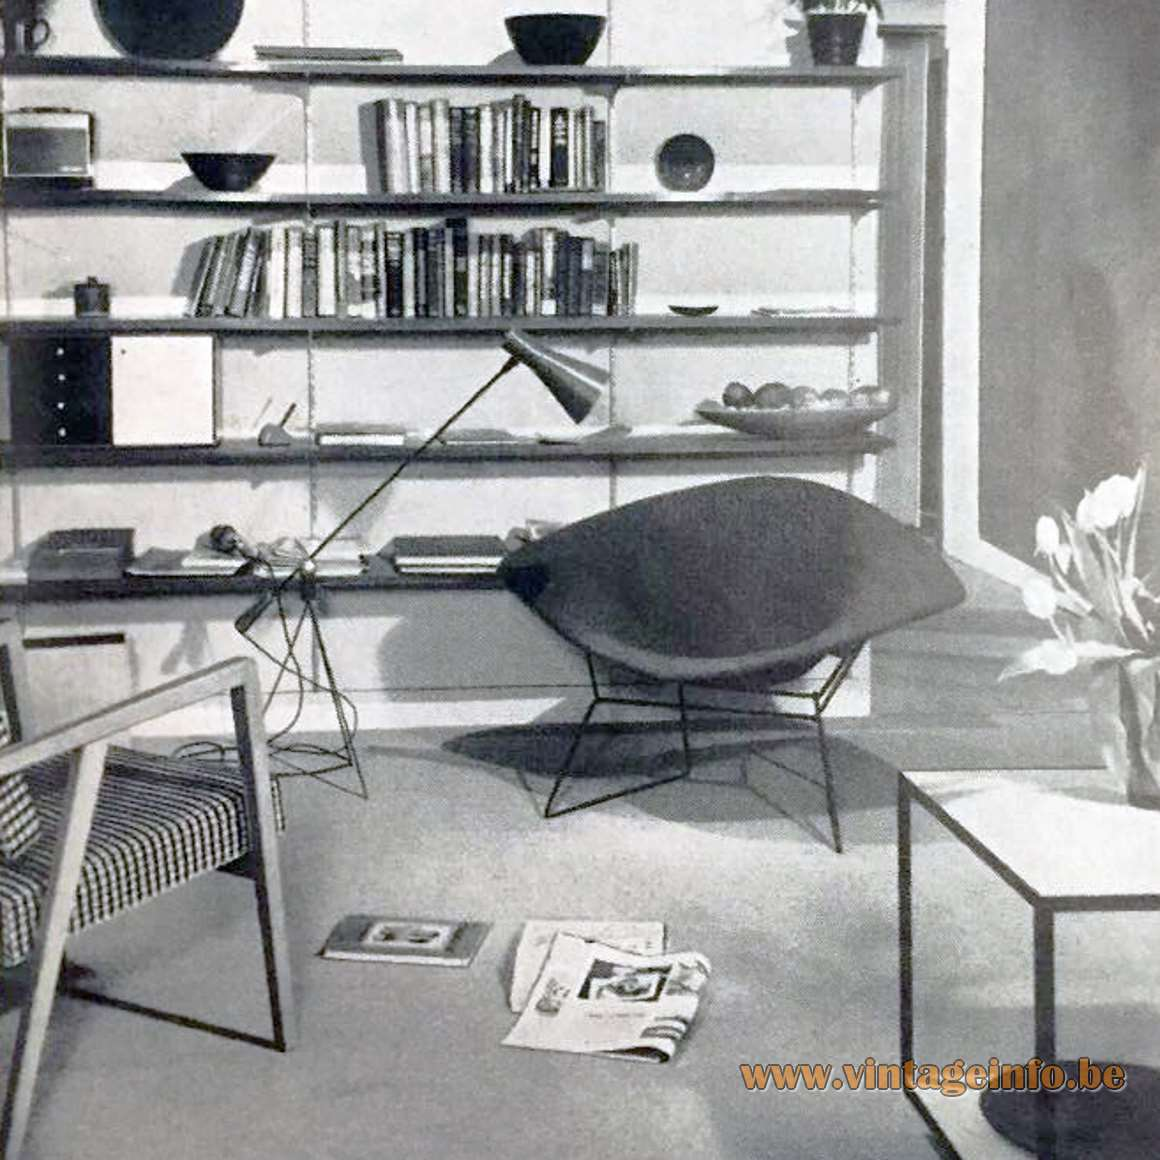 Magneto Floor Lamp 1950 design by Gilbert Allen 'Gil' Watrous produced by Heifetz